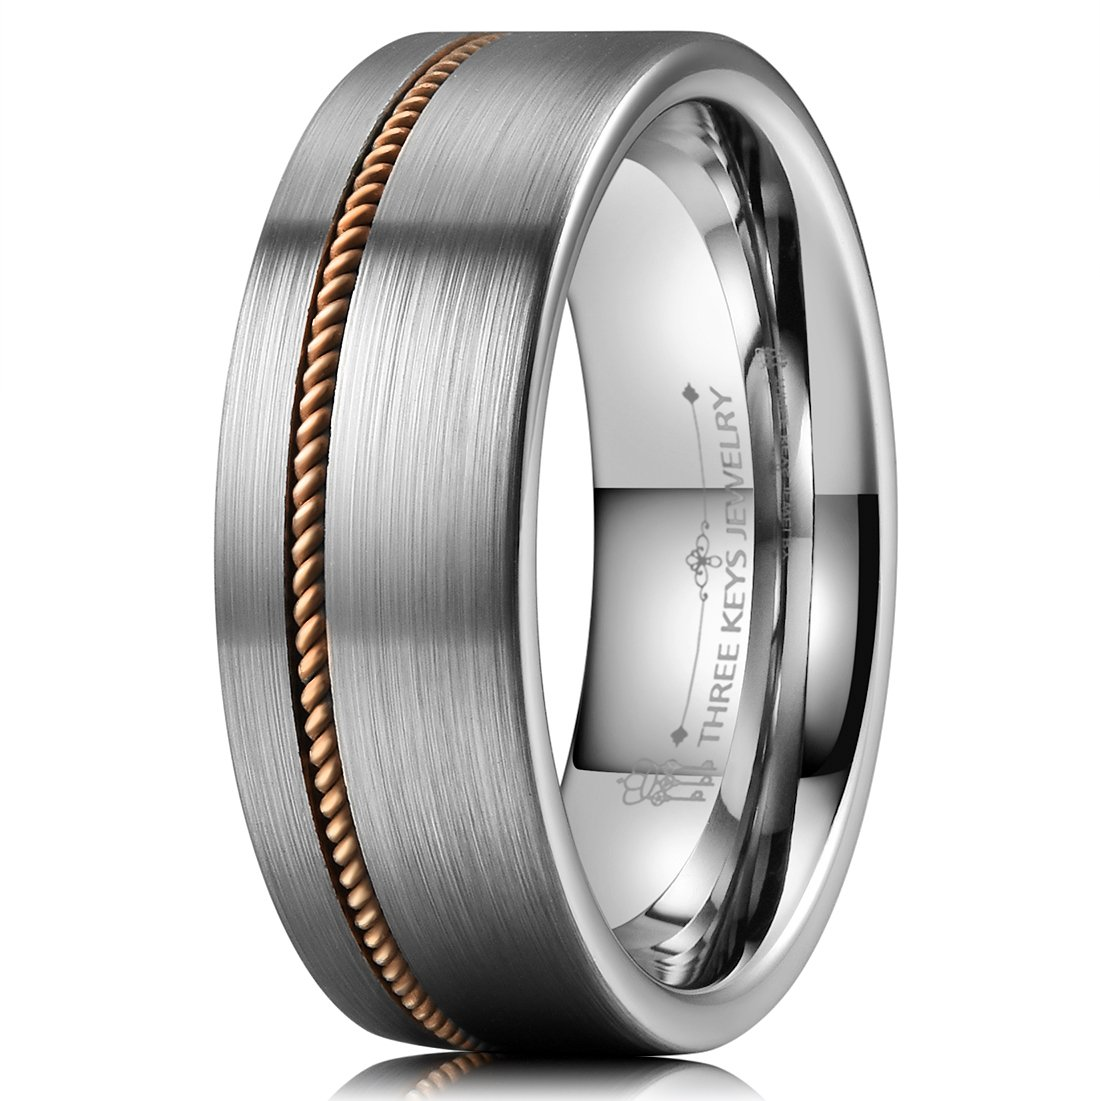 Three Keys Jewelry 8mm Guitar String Inlay Tungsten Wedding Ring Brushed Flat Mens Wedding Band Engagement Ring Music Jewelry Size 12.5